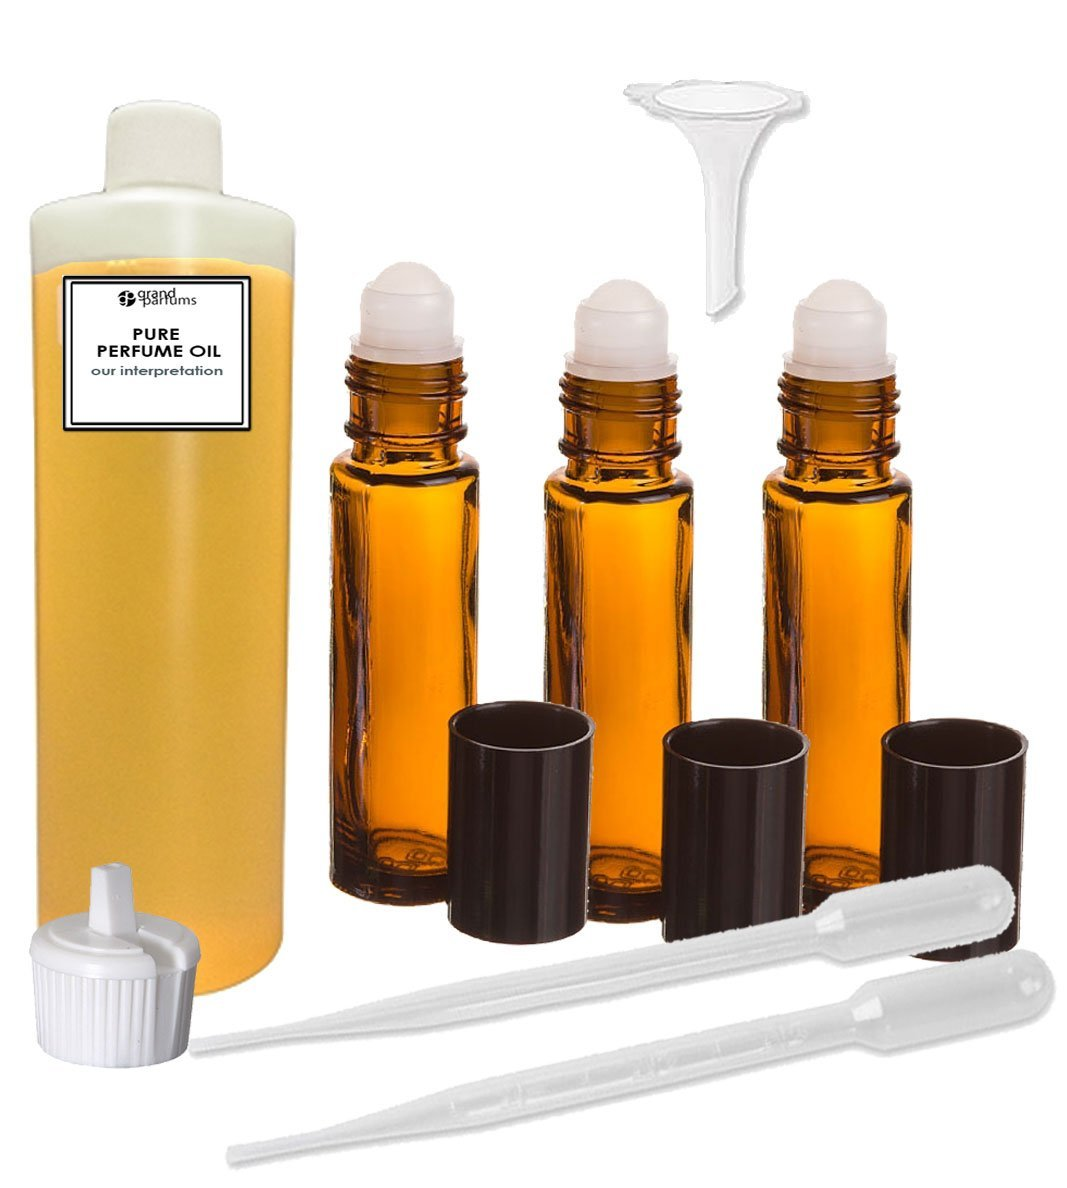 Perfume Oil Set - Love Chloe Body Oil For Women Scented Fragrance Oil - Our Interpretation, with Roll On Bottles and Tools to Fill Them (1 oz)